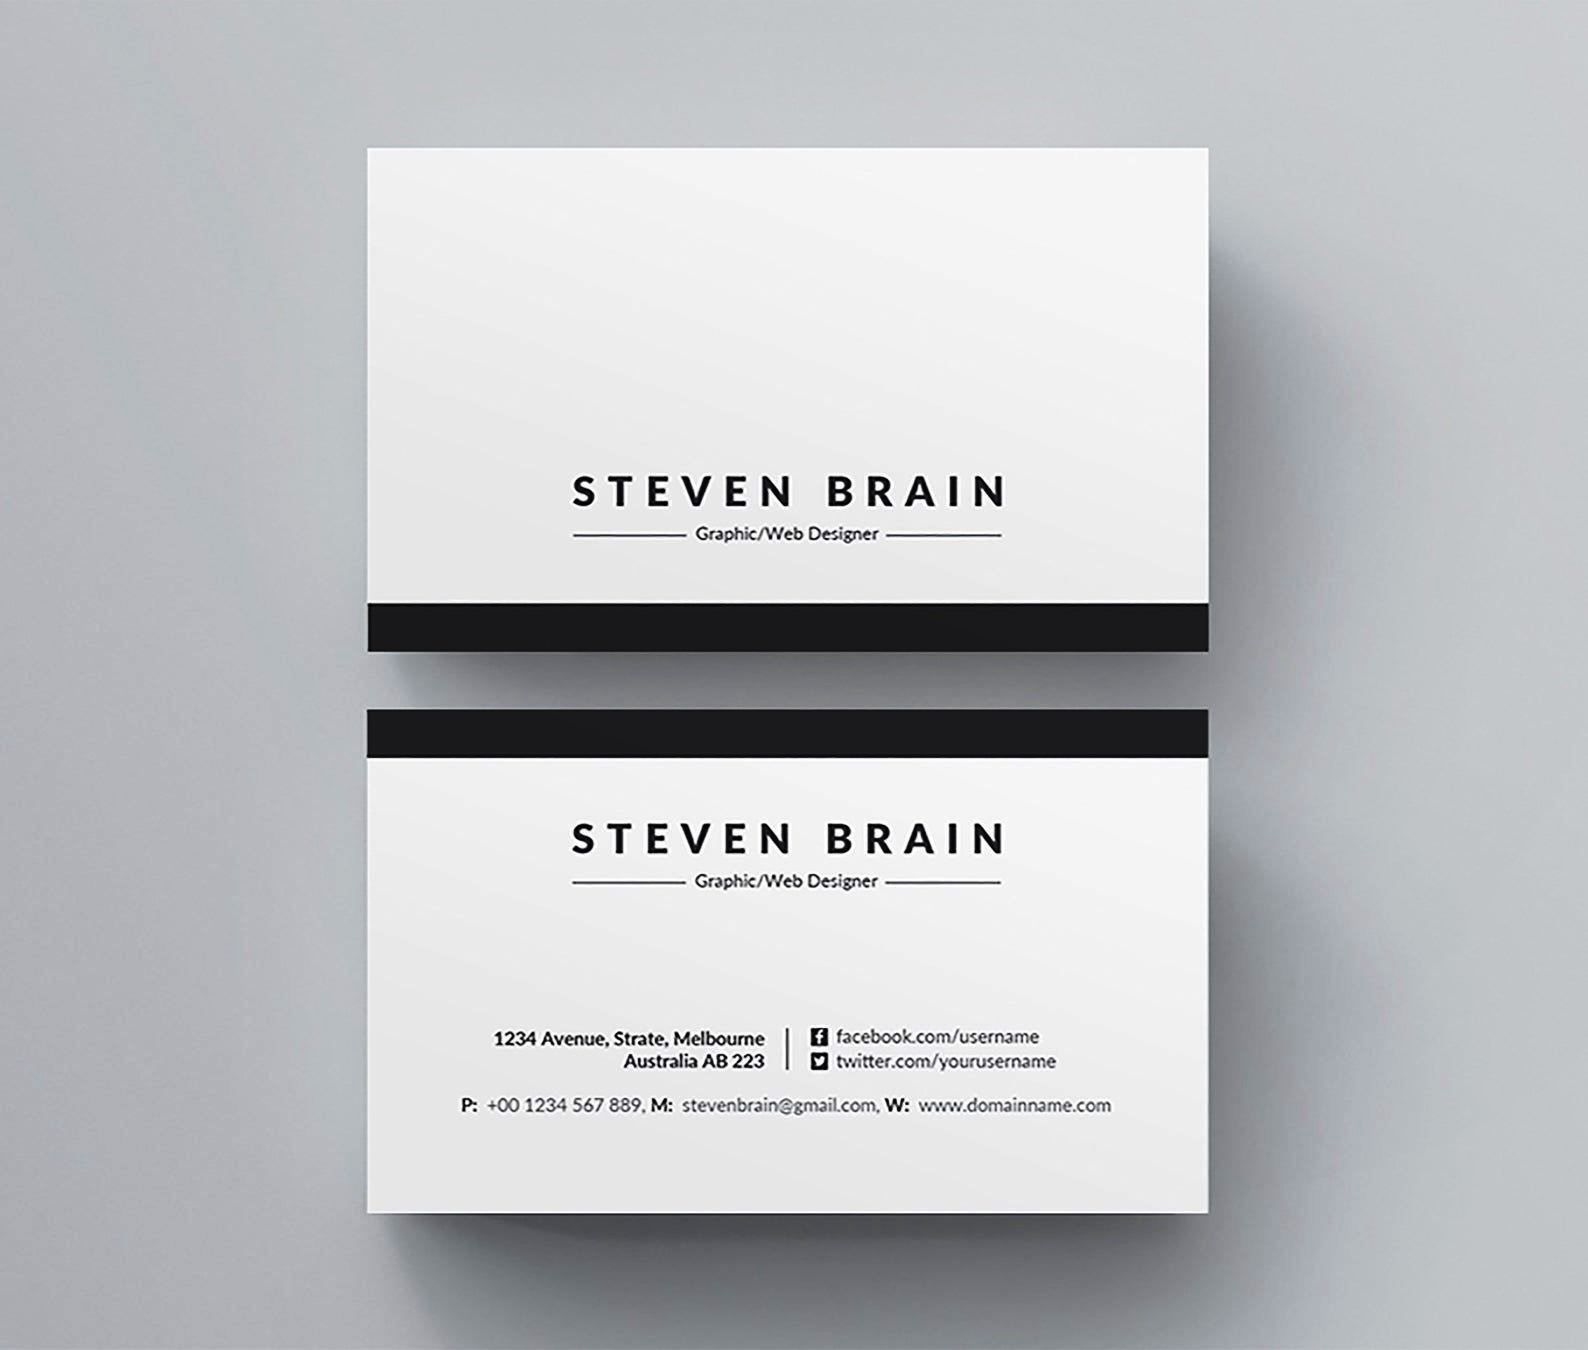 Download Free Blank Business Card Template Microsoft Word ...